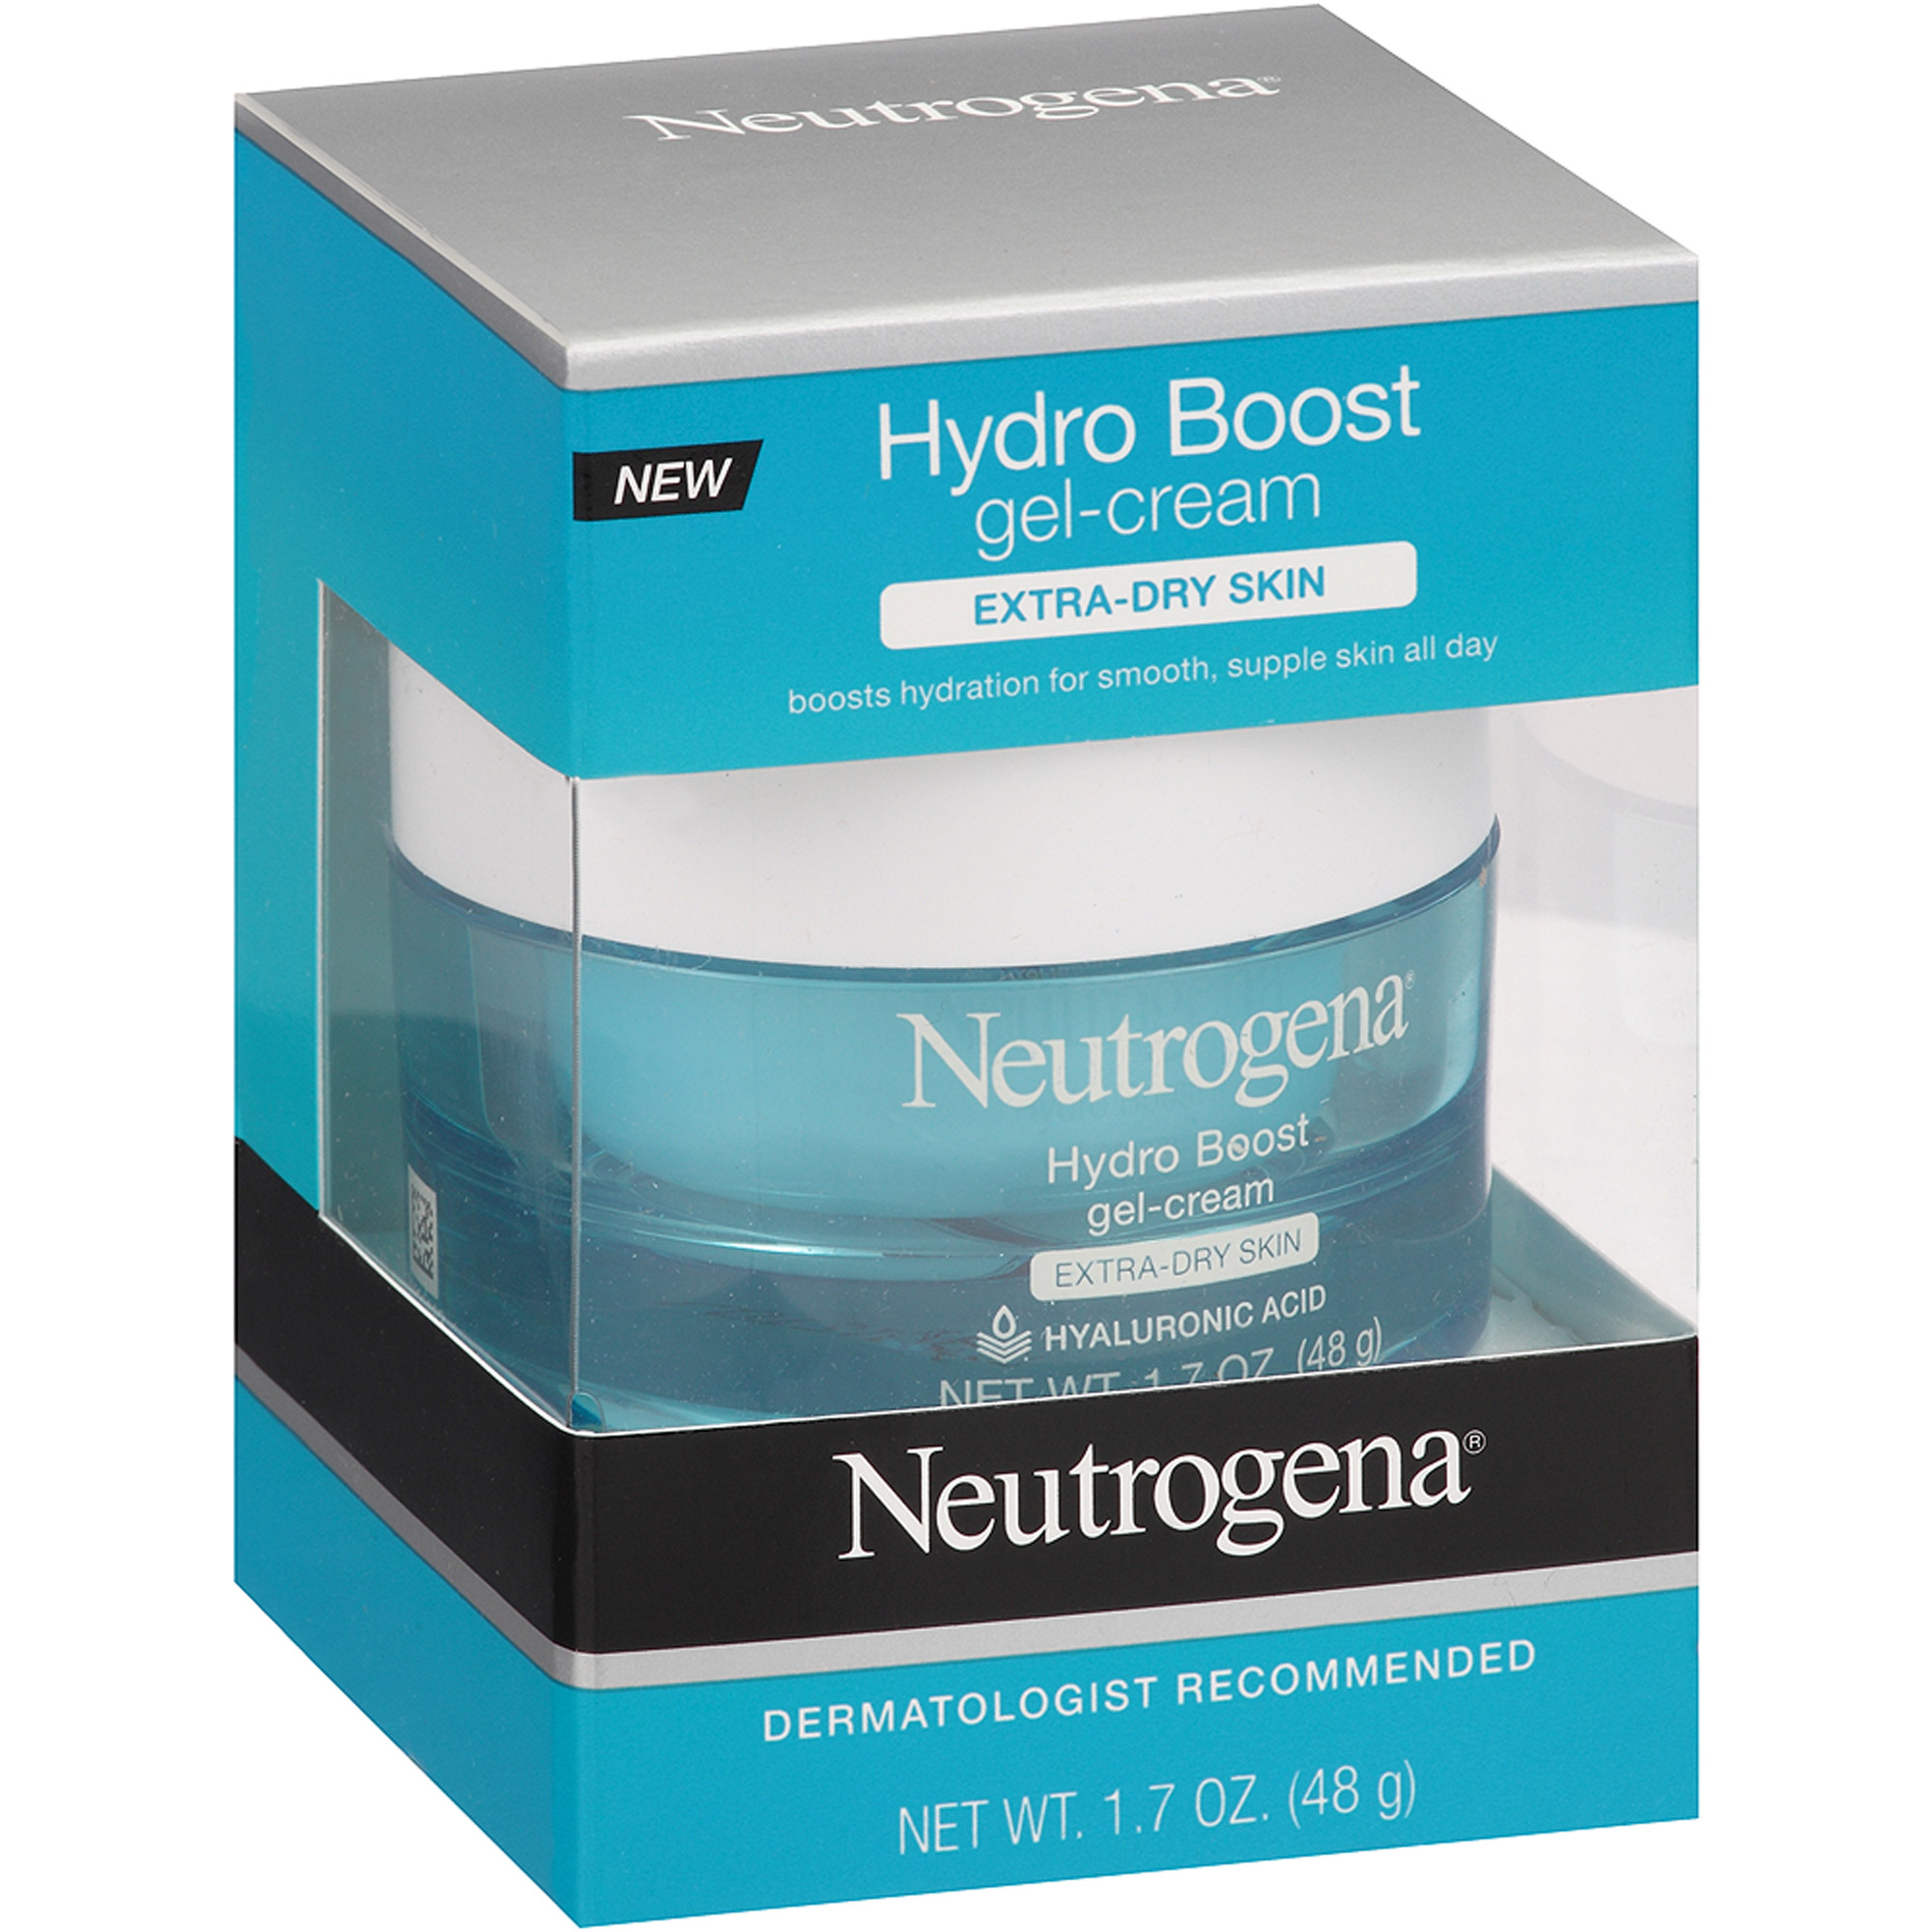 Neutrogena Hydro Boost Gel-Cream for Extra Dry Skin, 1.7 oz